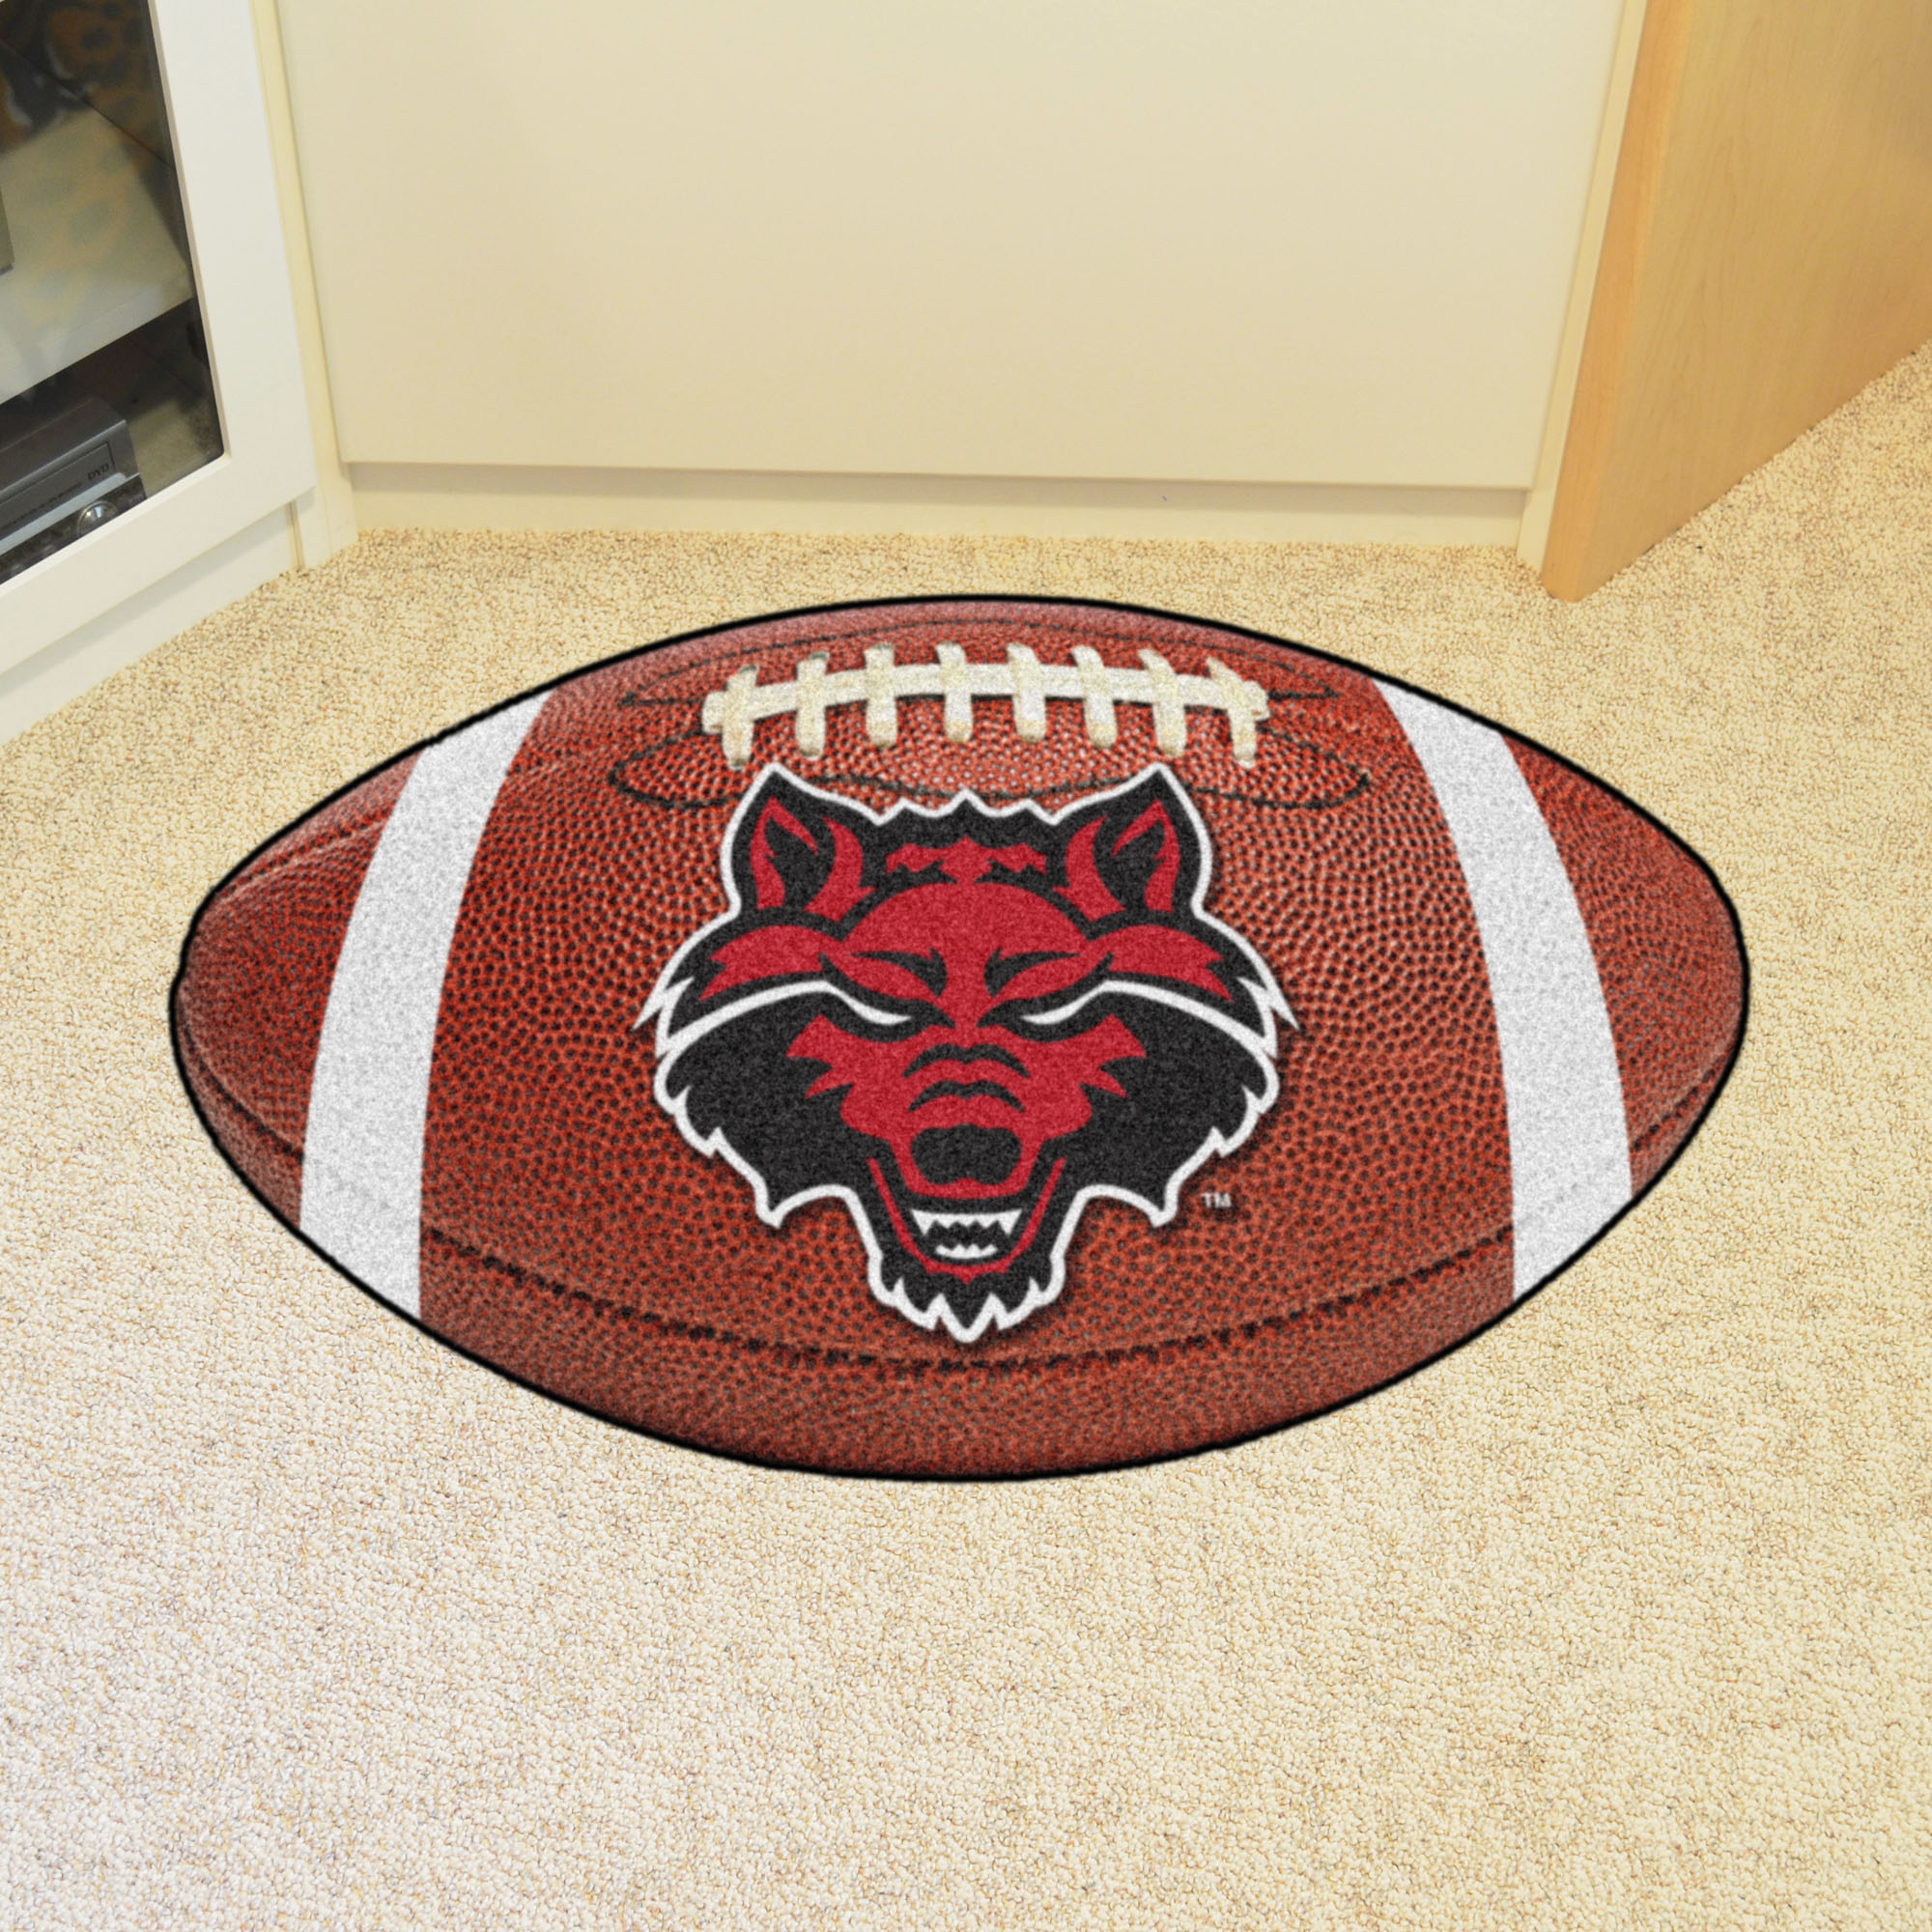 Arkansas State University Ball-Shaped Area Rugs (Ball Shaped Area Rugs: Football)